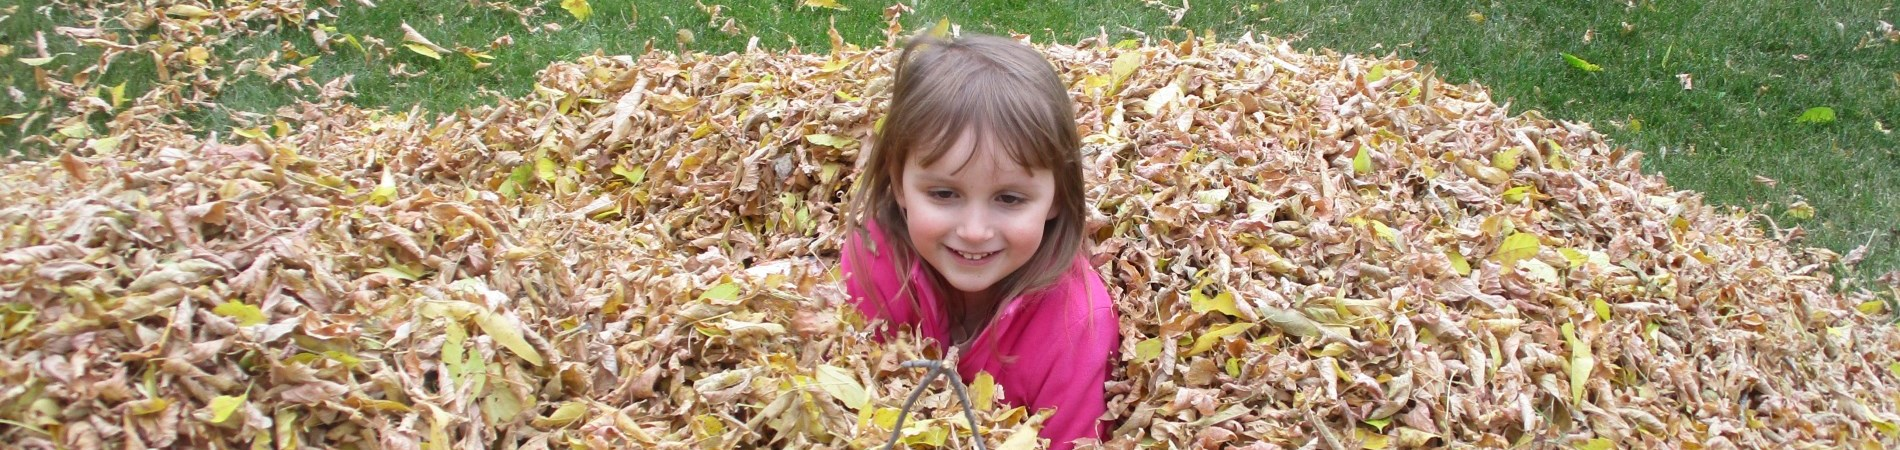 Little girl in pile of fall leaves